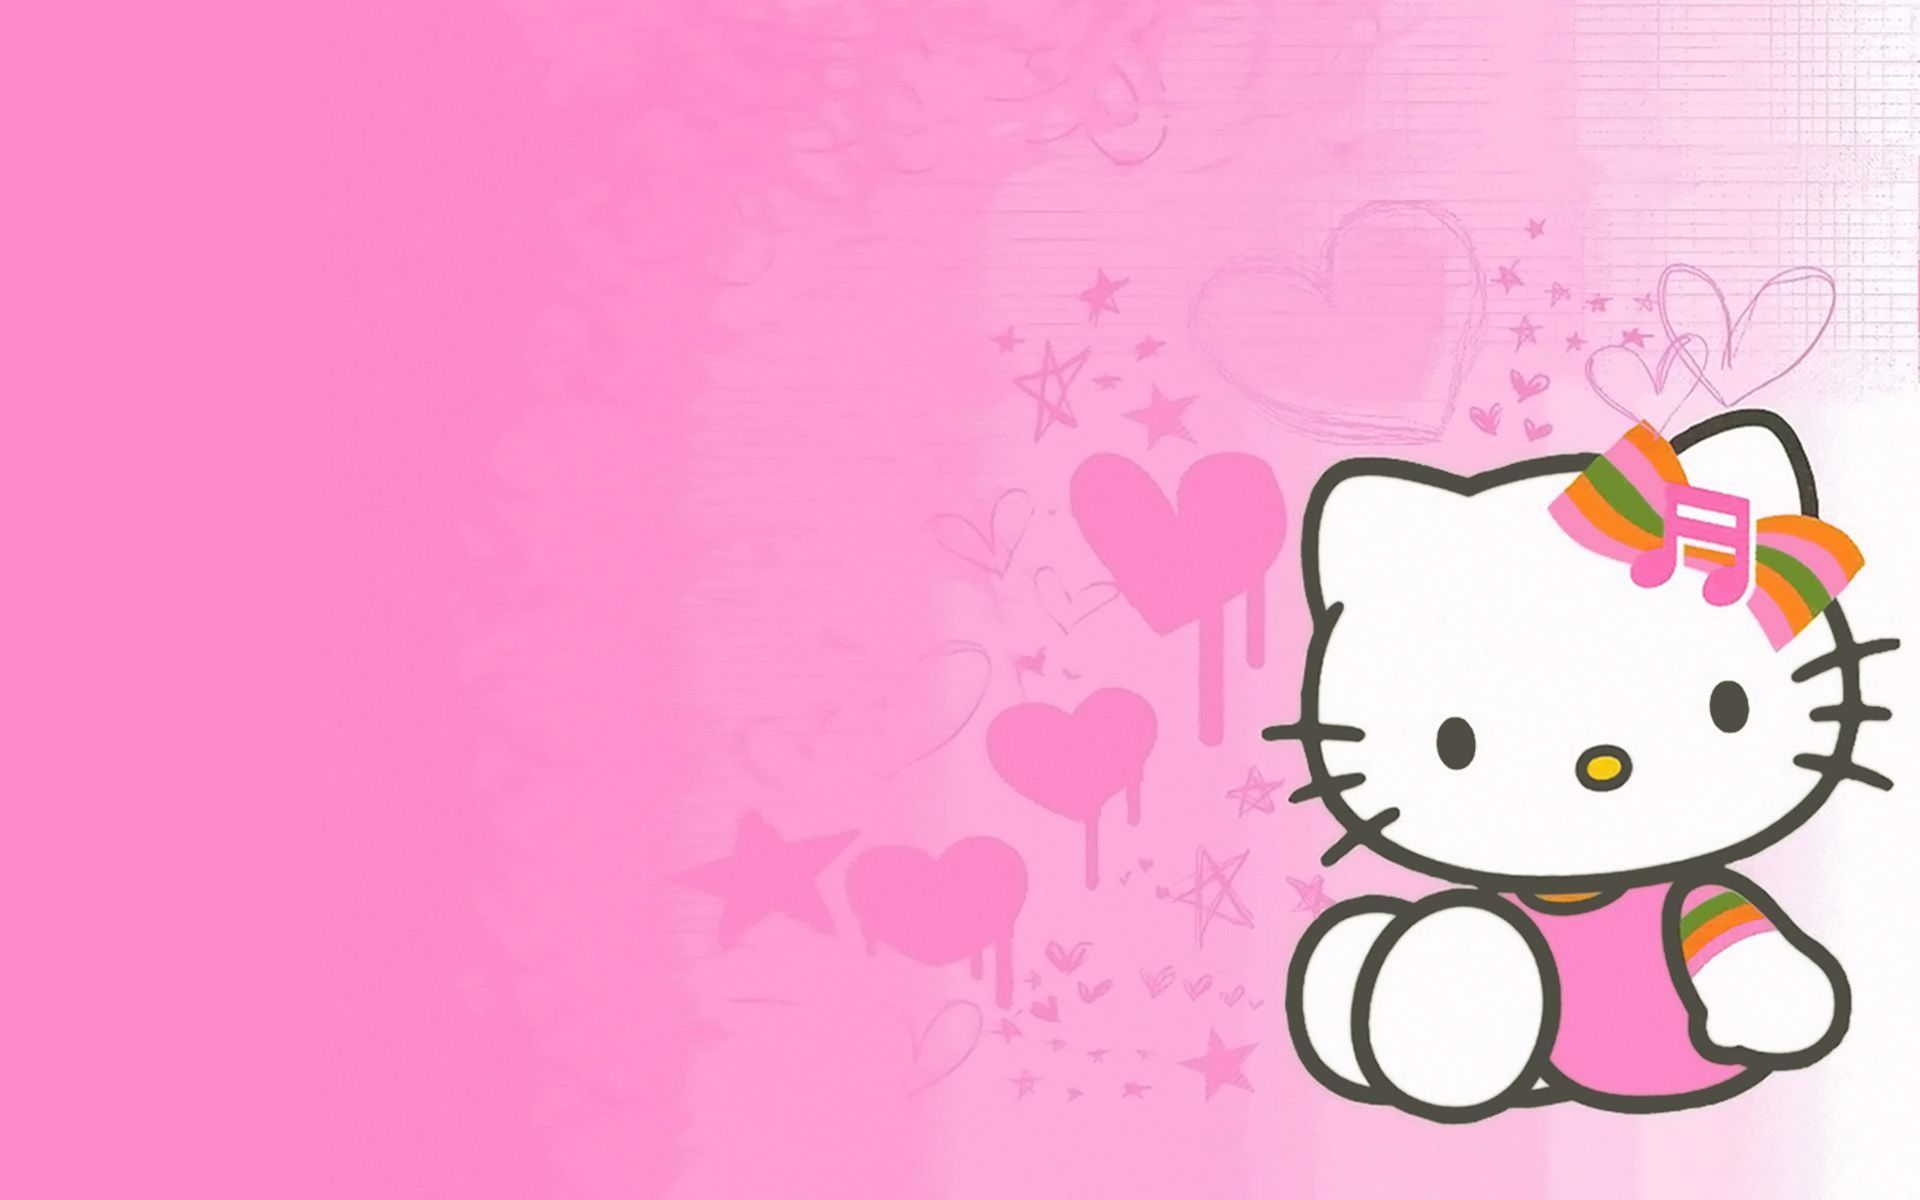 Download Desktop Background Kitty Hello Kitty Desktop Backgrounds Wallpapers Wallpap Hello Kitty Backgrounds Hello Kitty Wallpaper Hd Hello Kitty Wallpaper